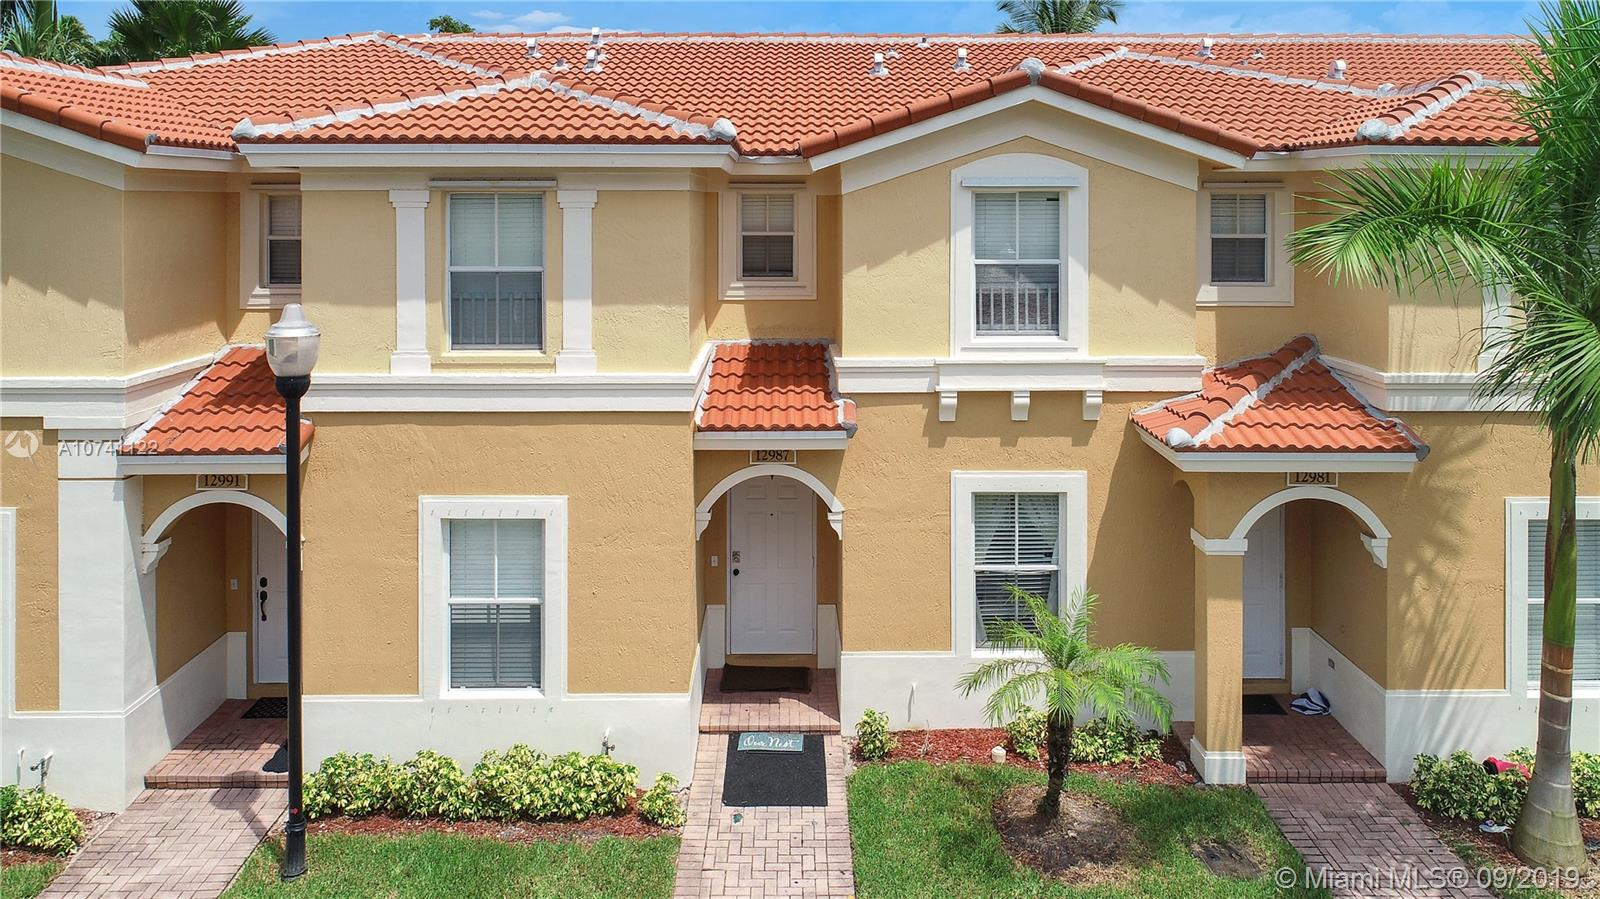 12987 S W 30 #131 For Sale A10741122, FL